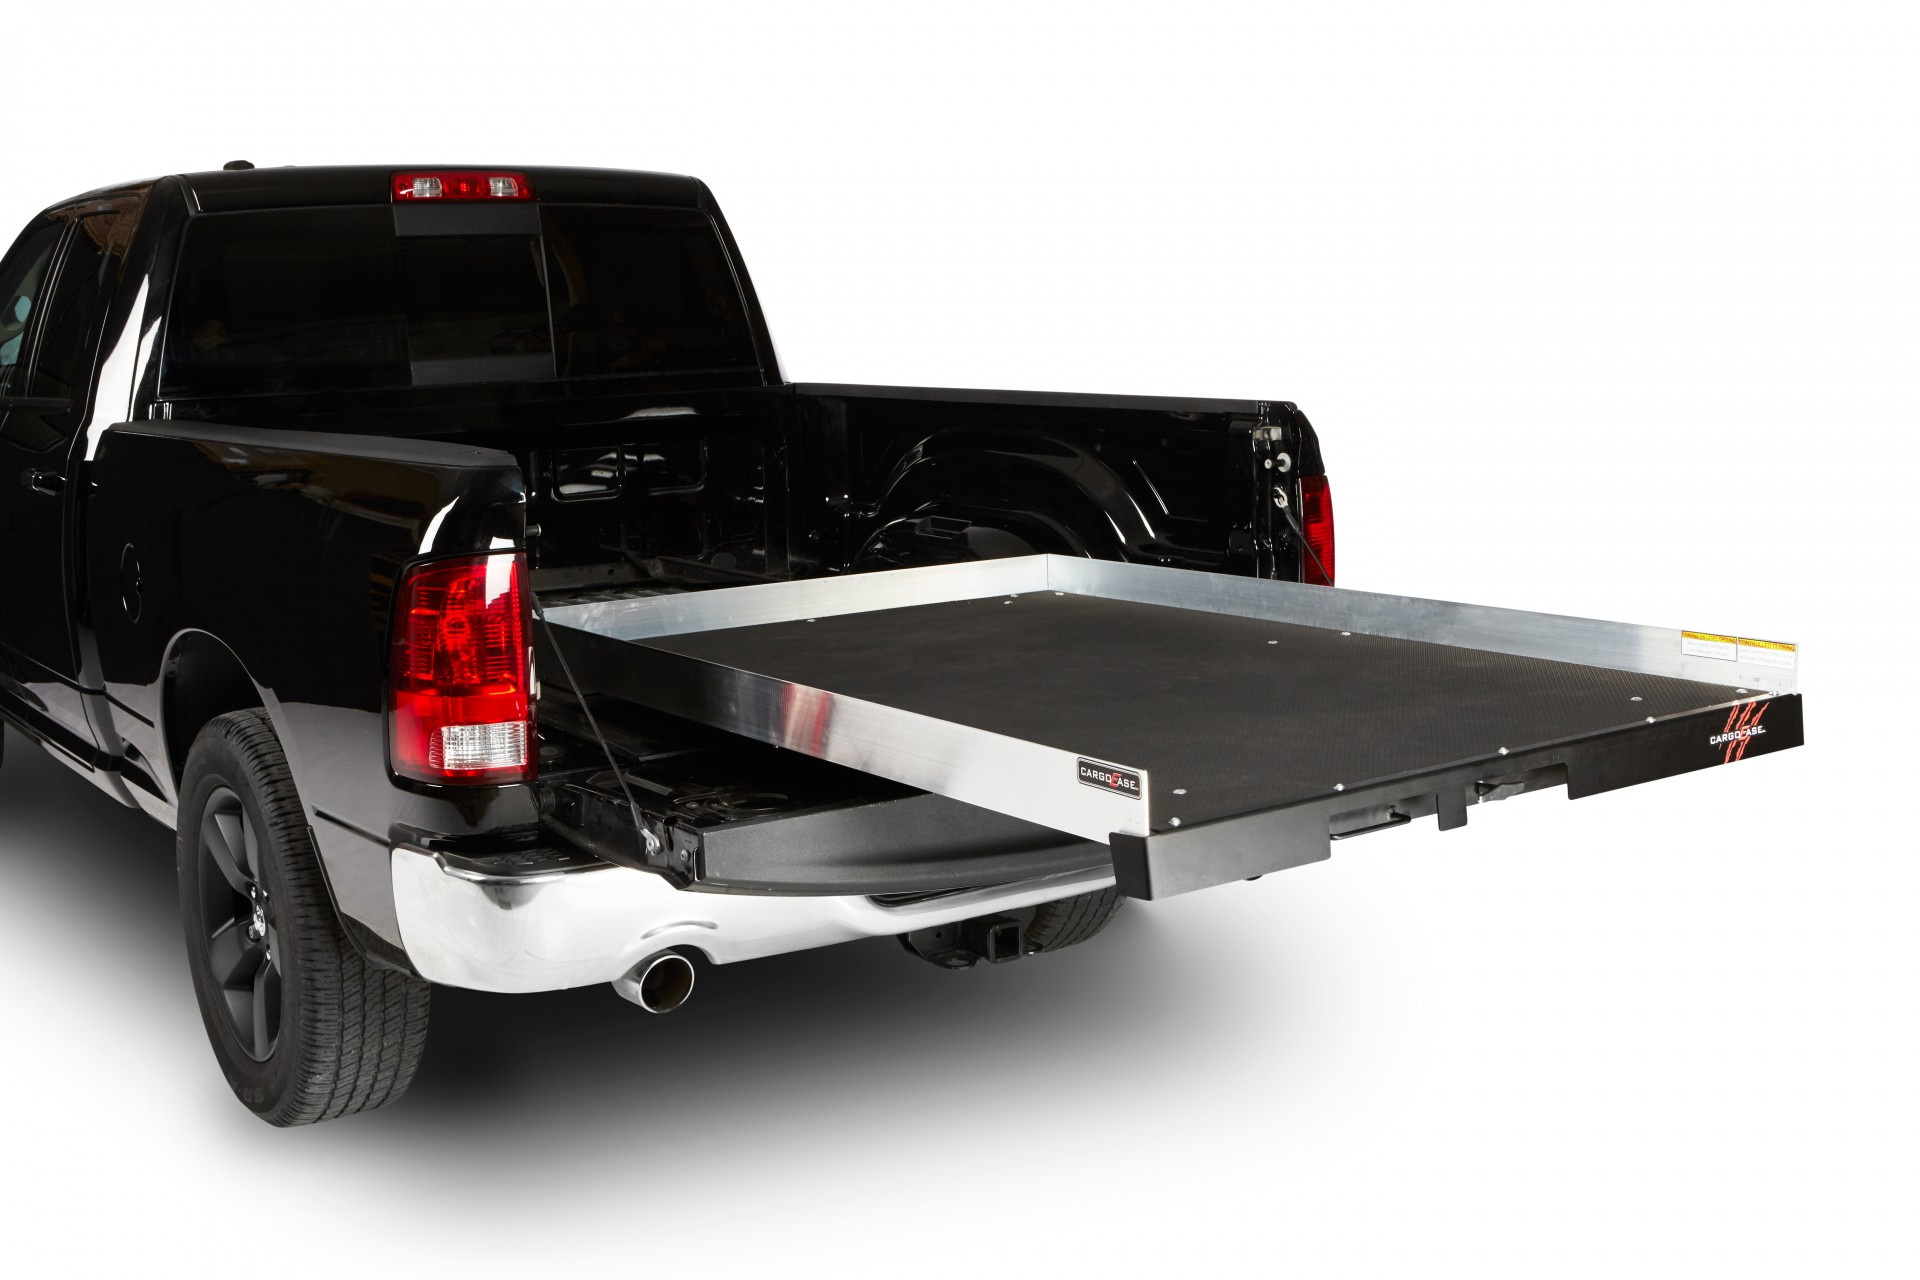 Cargo Ease Extender 1000 Cargo Slide 1000 Lb Capacity Toyota 6 Foot Beds